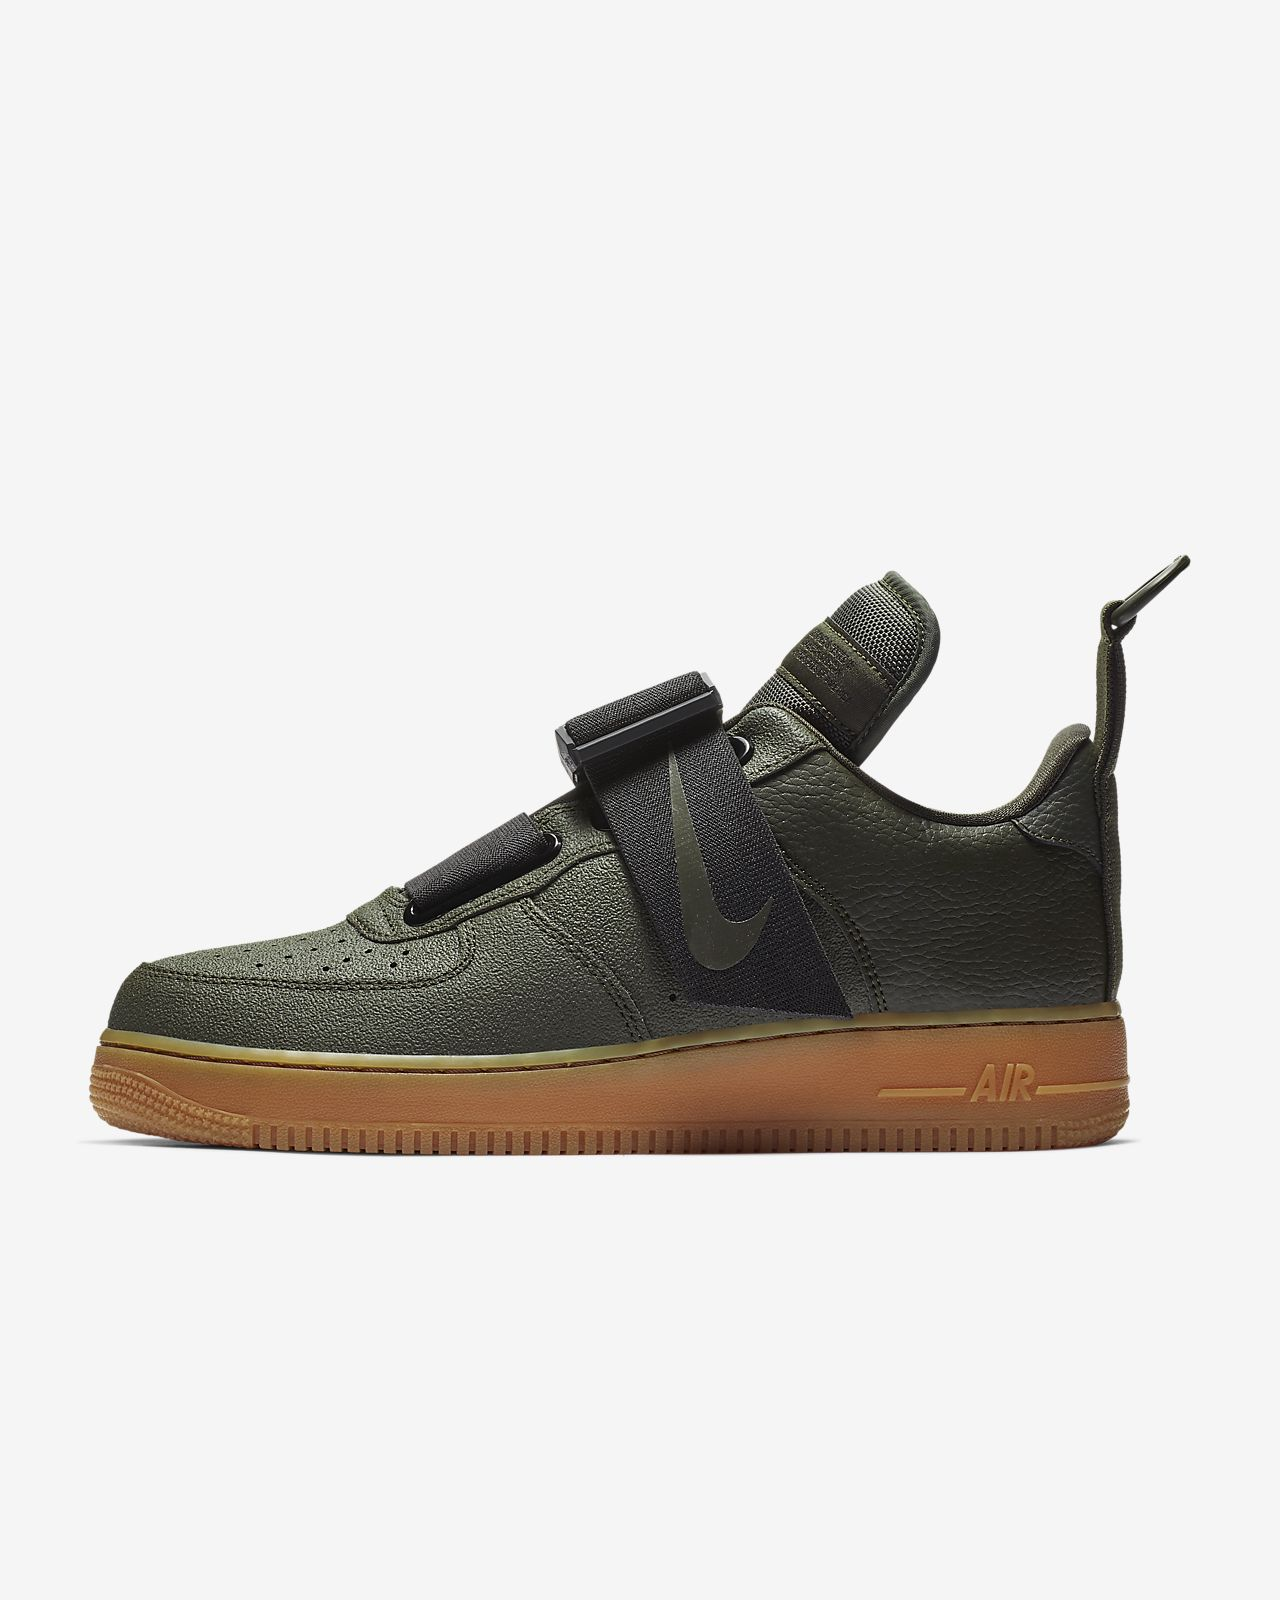 the best attitude 6c3e8 02171 Low Resolution Nike Air Force 1 Utility Zapatillas - Hombre Nike Air Force 1  Utility Zapatillas - Hombre